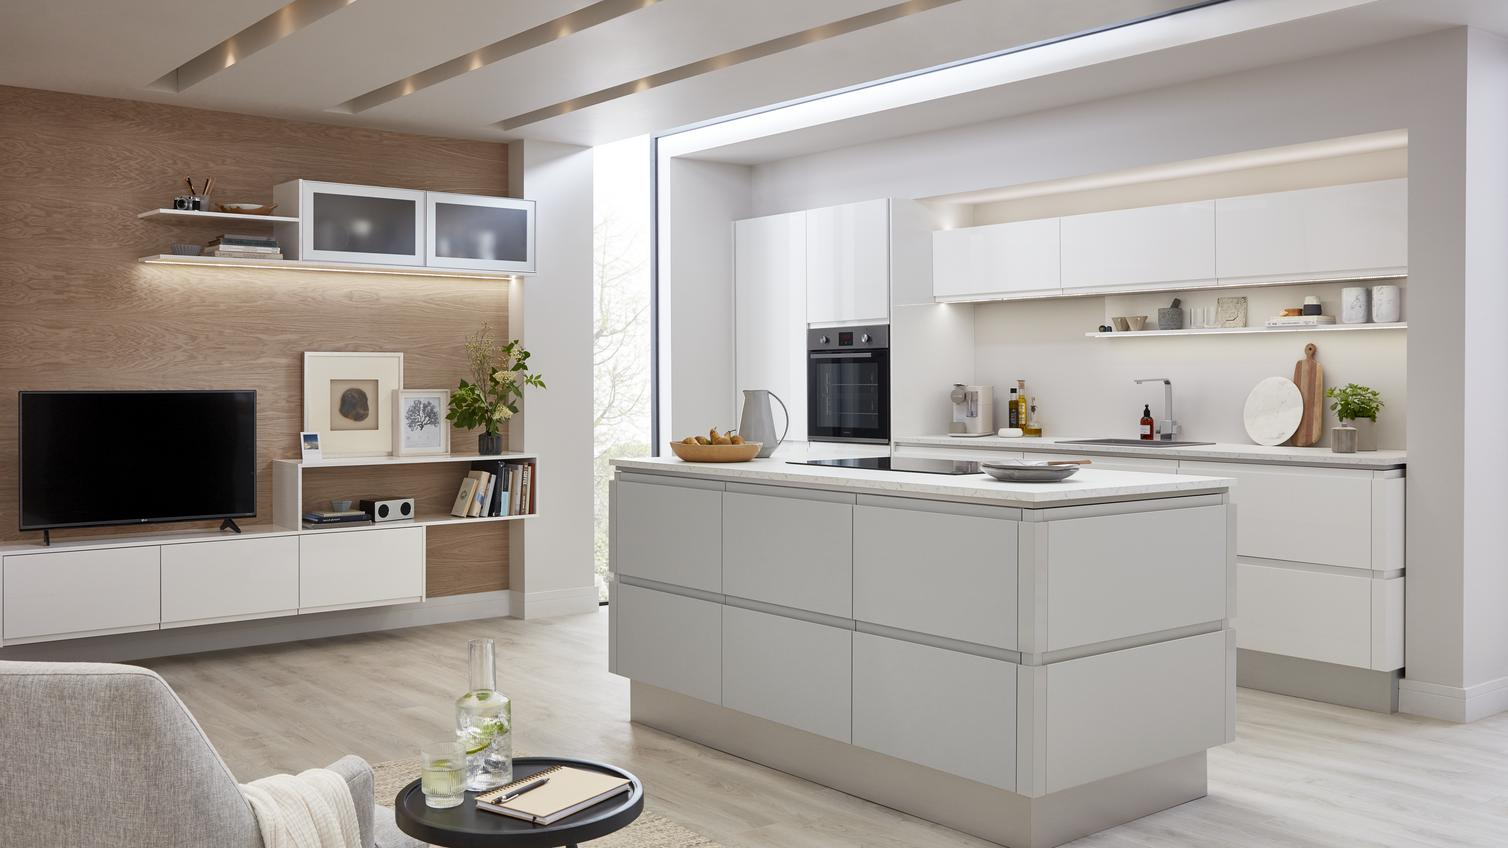 open plan kitchen ideas howdens joinery. Black Bedroom Furniture Sets. Home Design Ideas